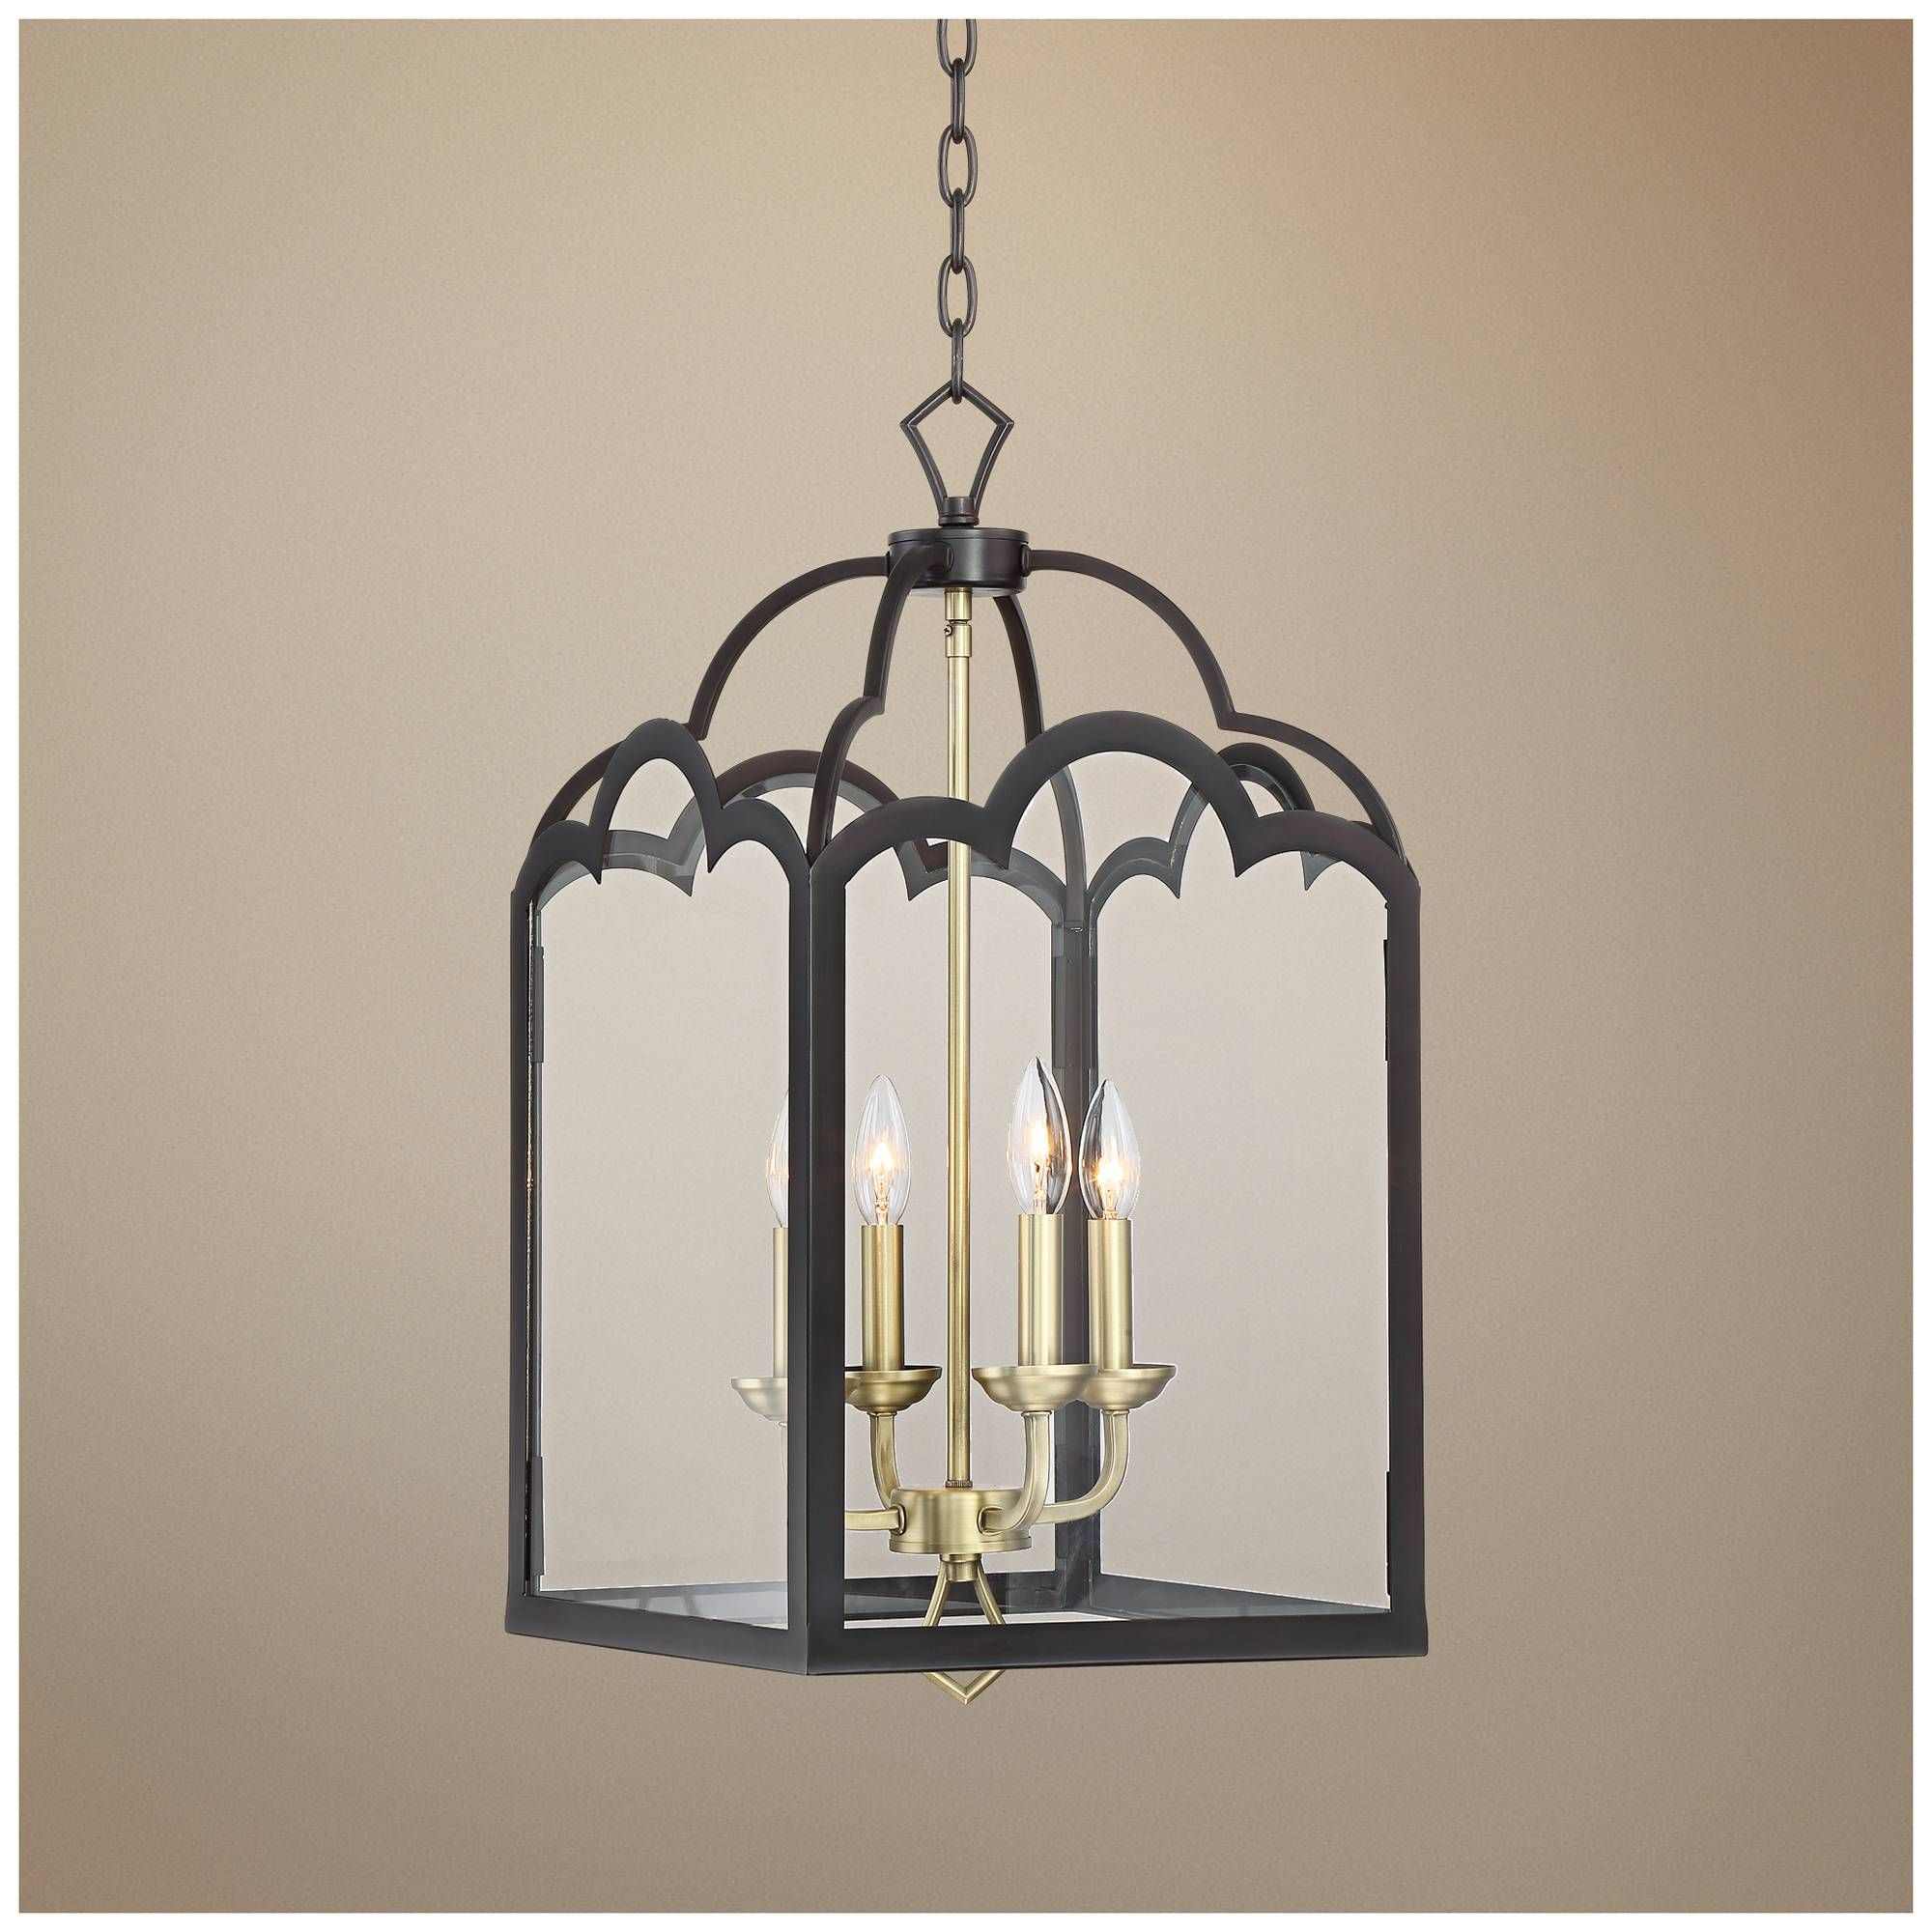 """Natalia 13 1 2""""W Antique Brass and Bronze Entry Chandelier Style"""